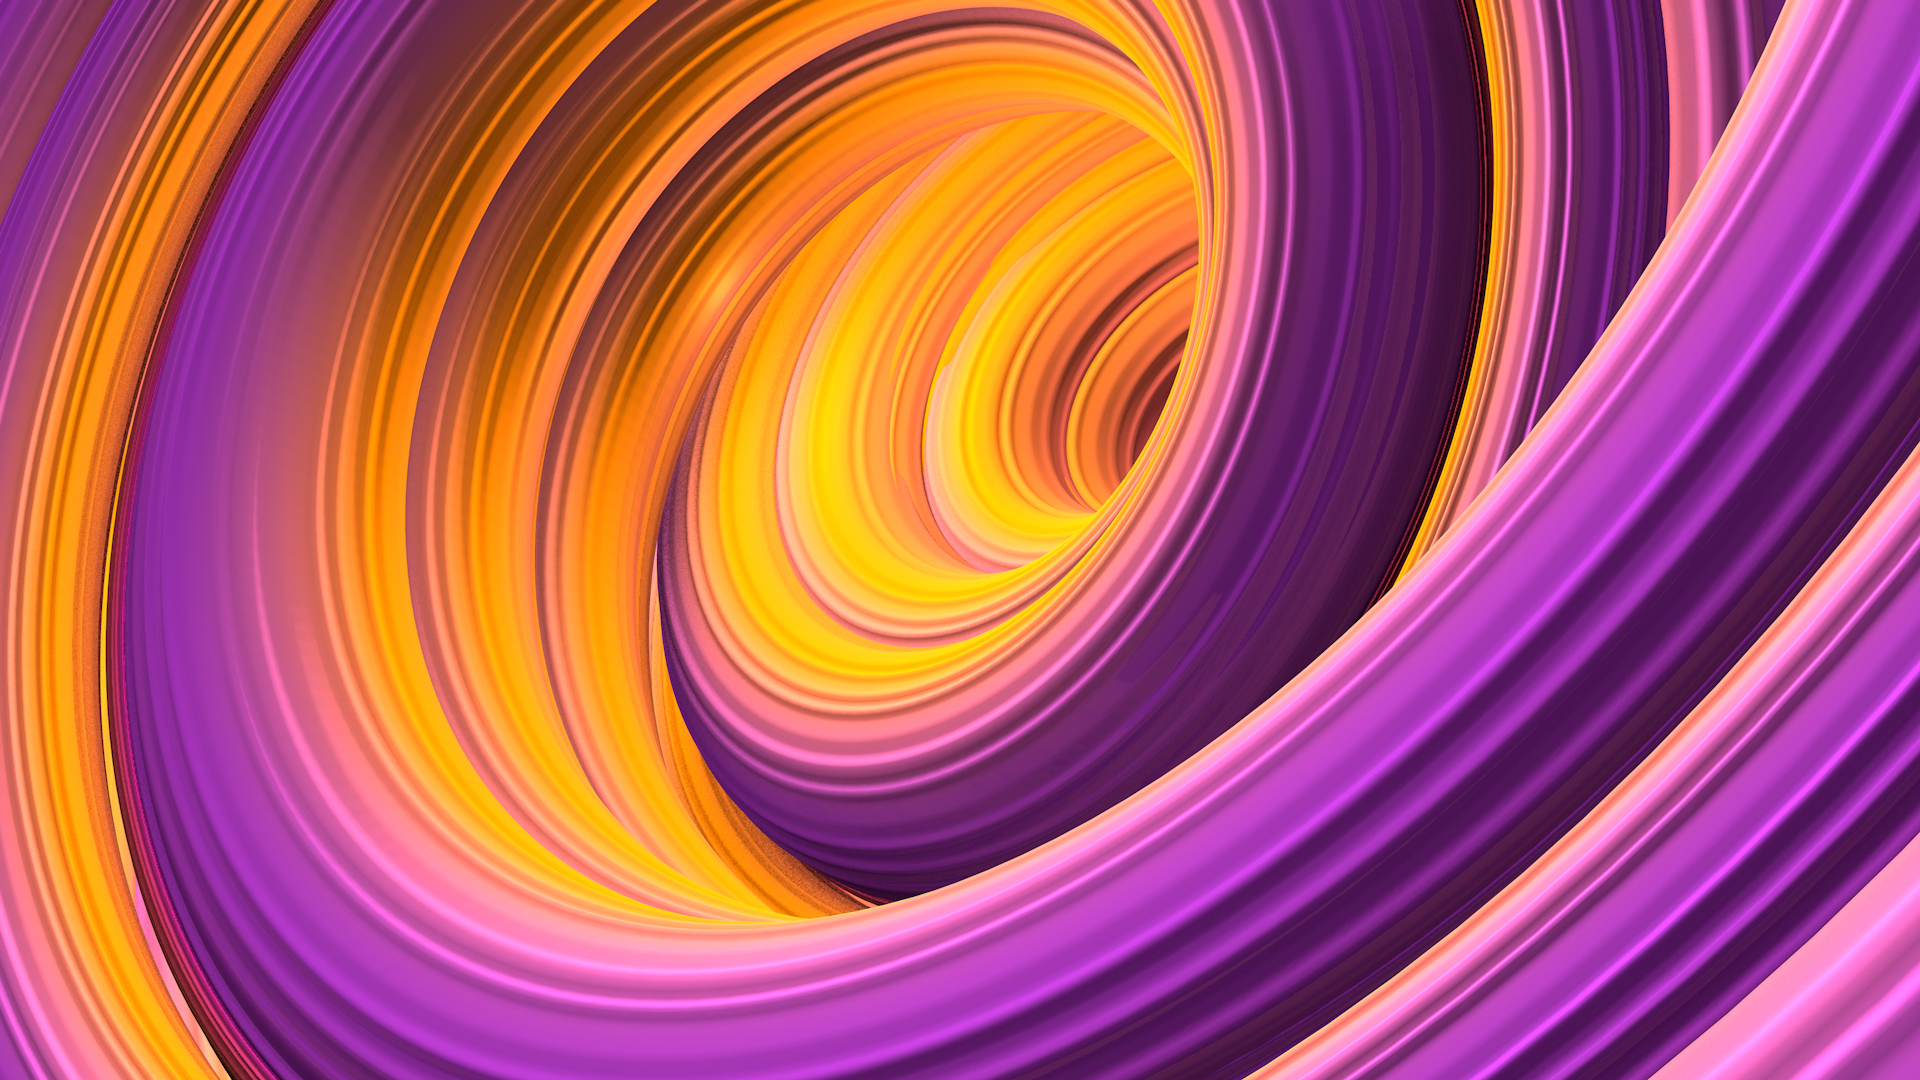 PURPLE AND ORANGE  SWIRL0100.png